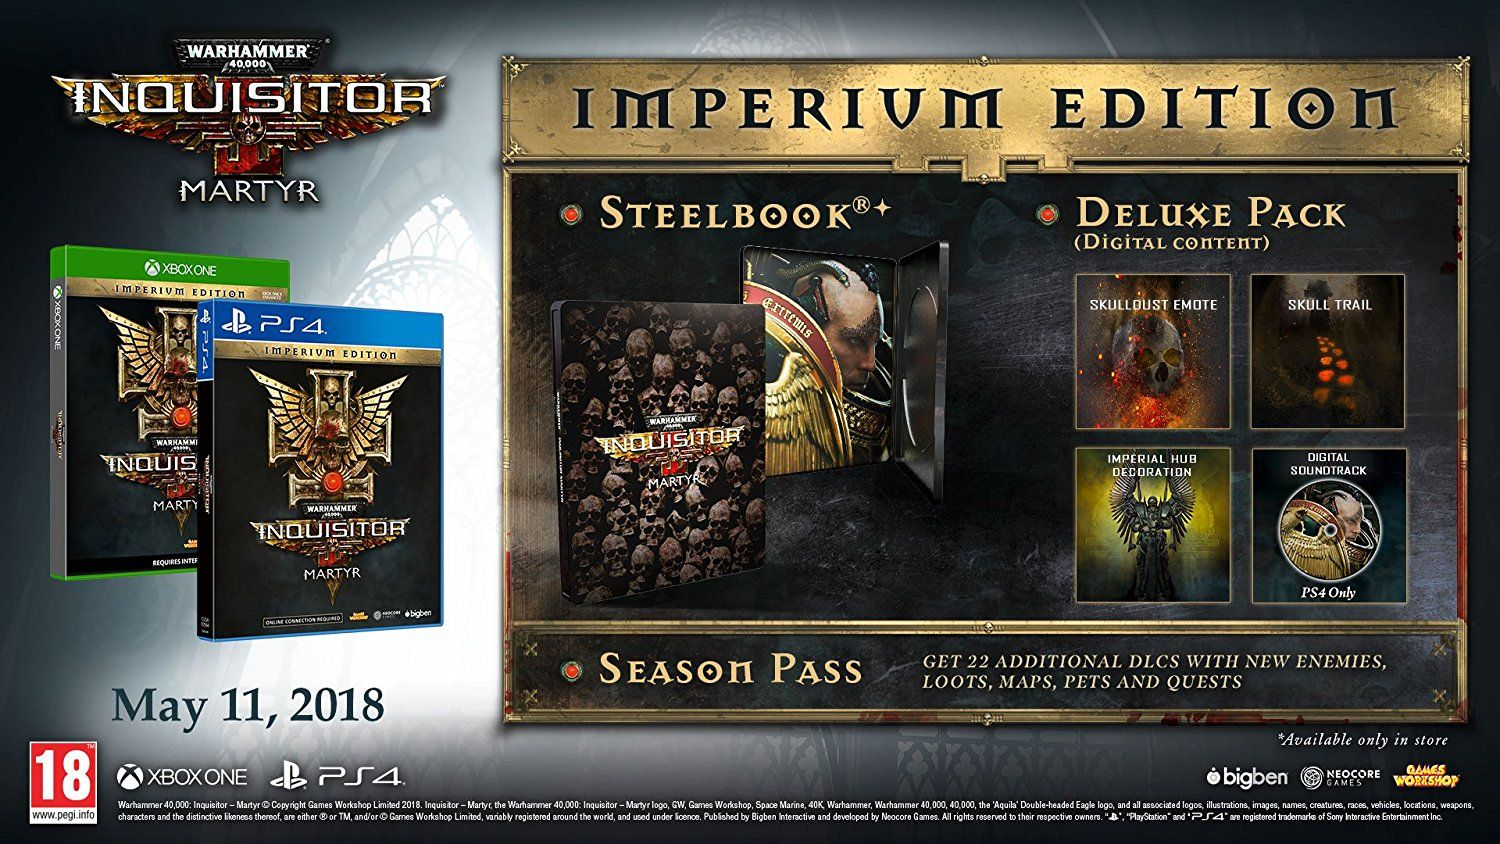 Warhammer 40,000 Inquisitor Martyr Imperium Edition (PS4) - 3